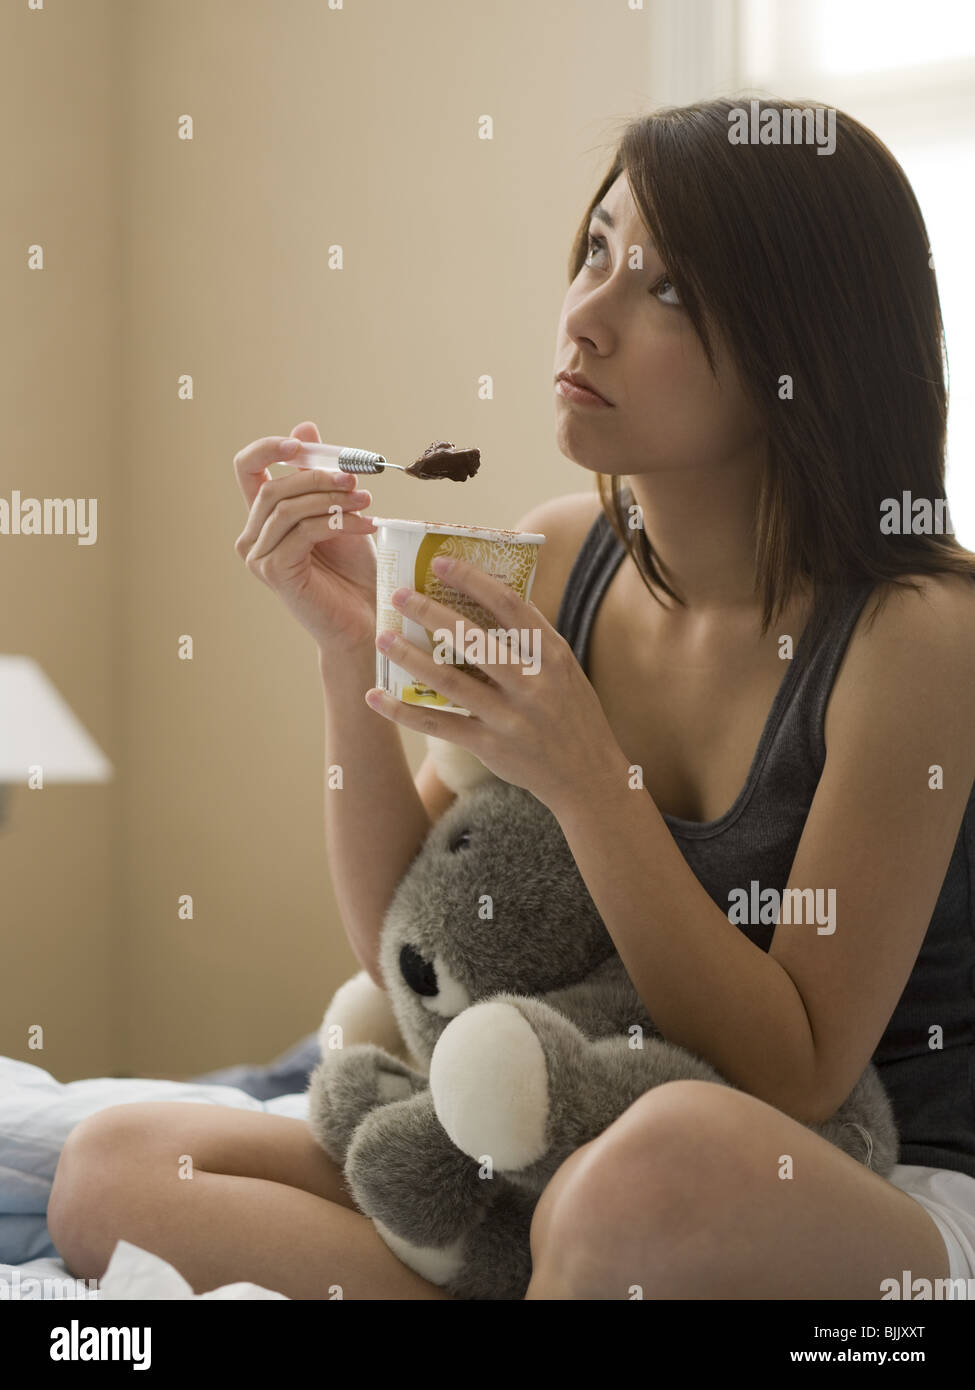 Woman eating chocolate ice cream in bed with stuffed animal - Stock Image